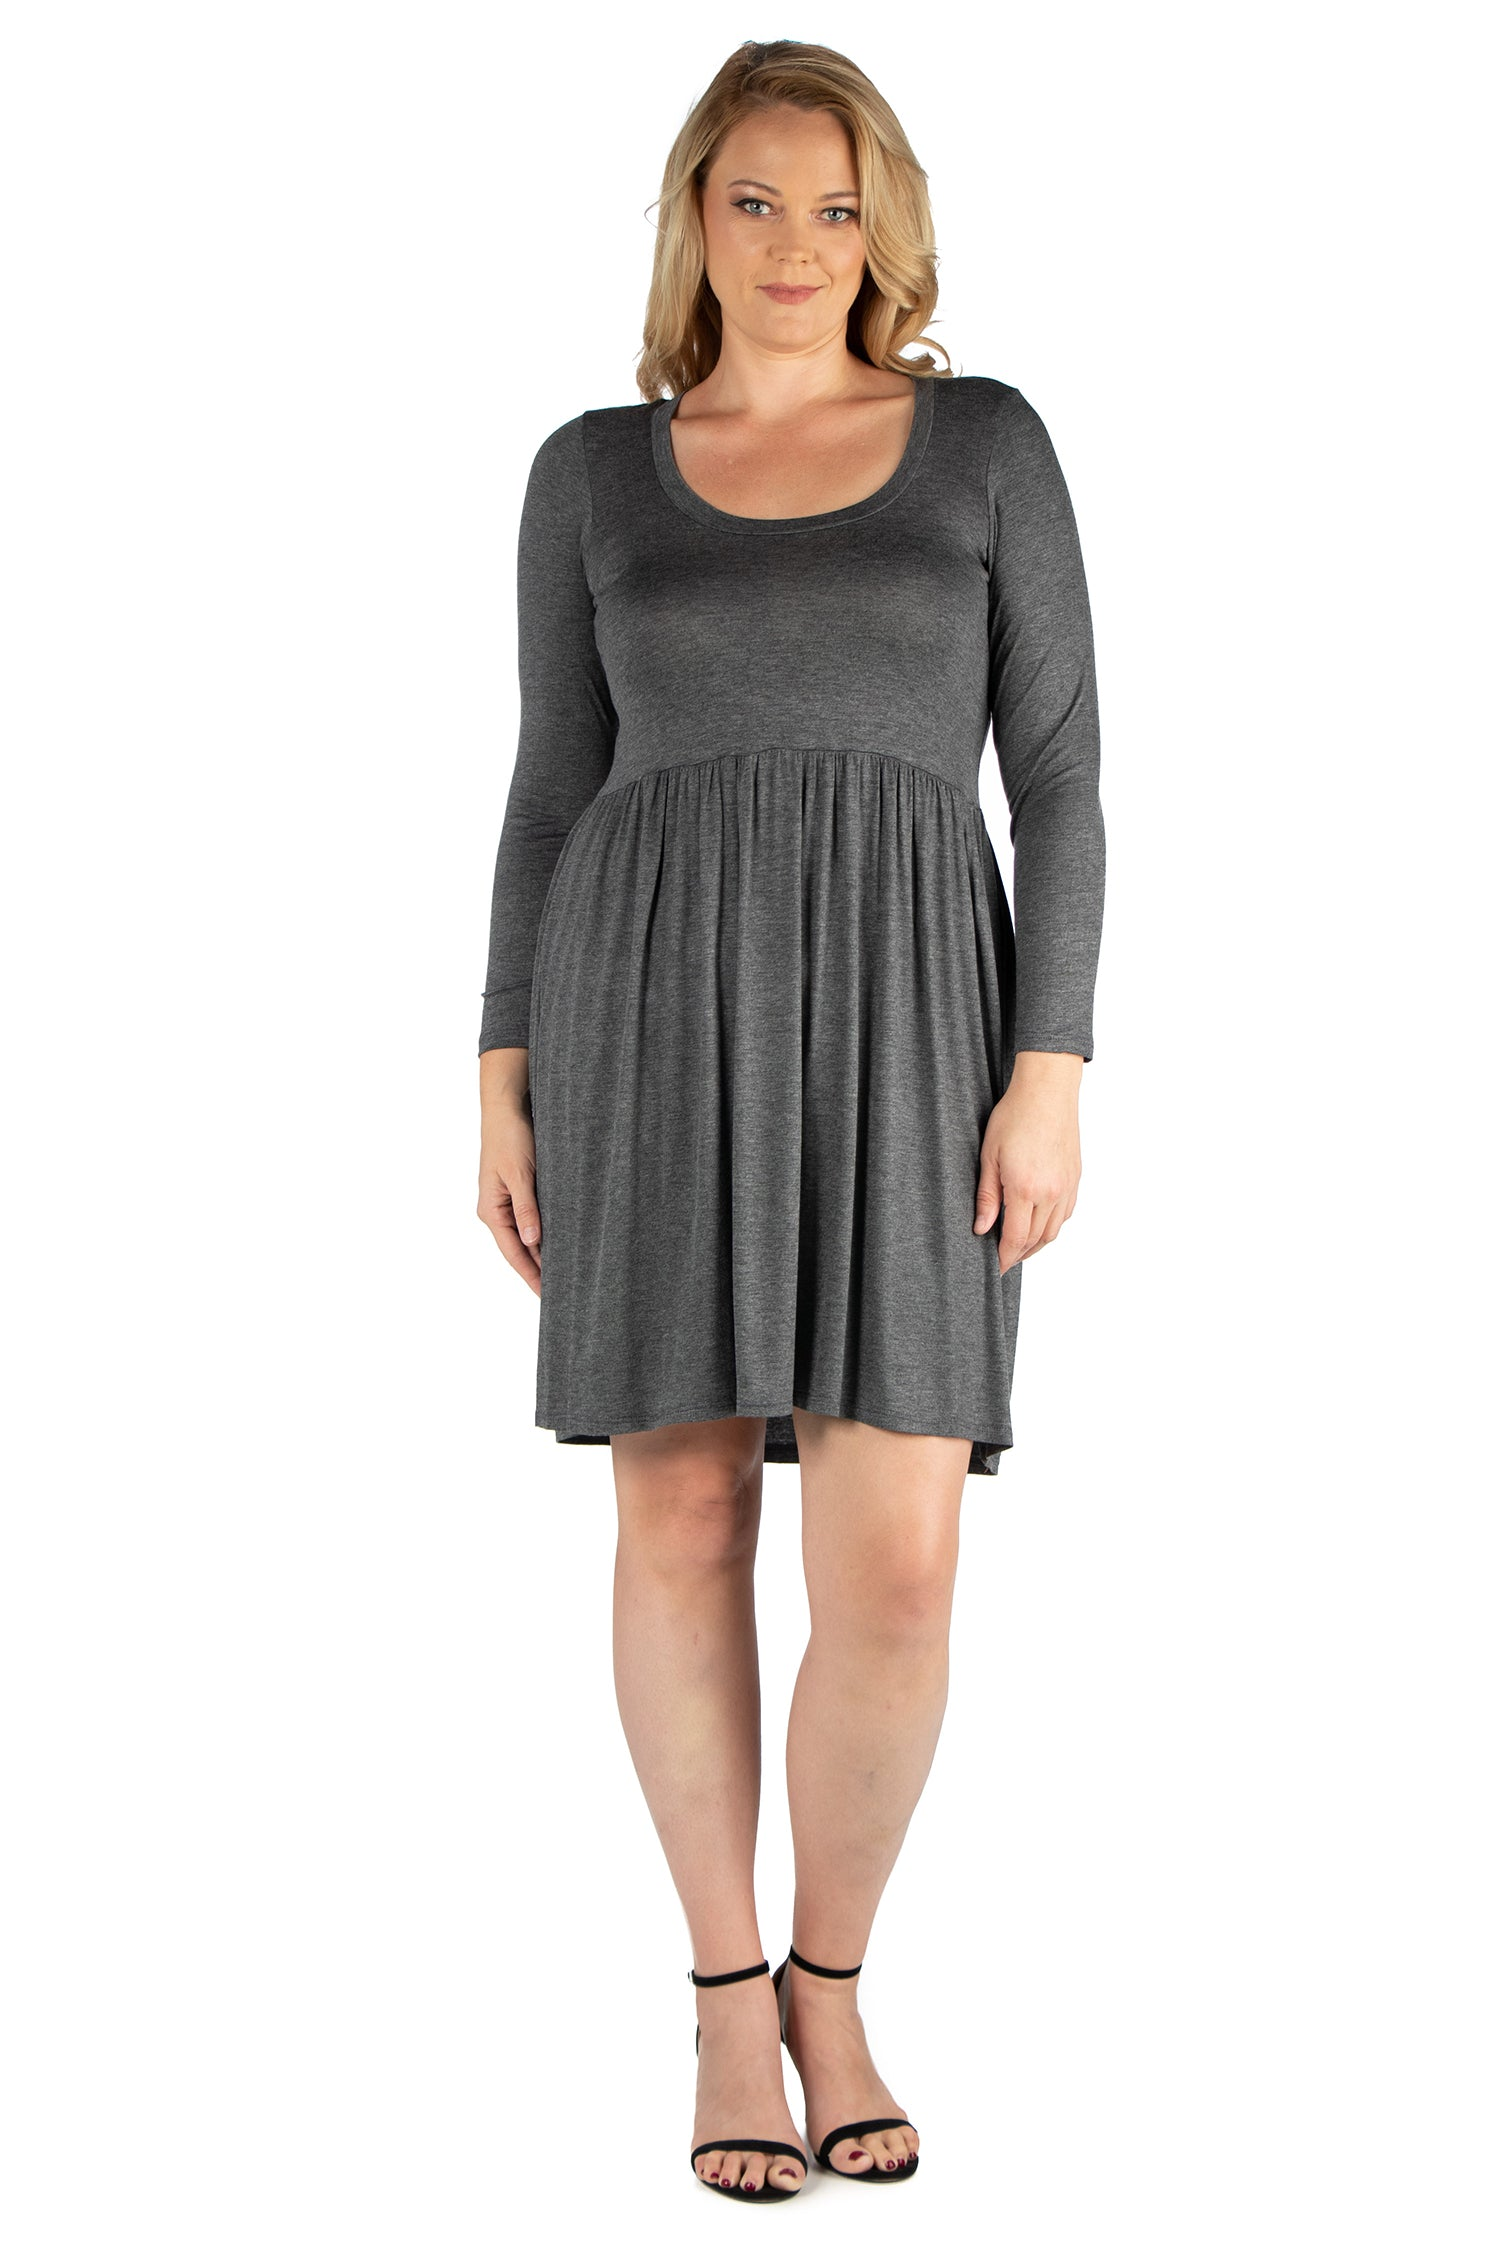 24seven Comfort Apparel Black Floral Print Long Sleeve Pleated Plus Size Dress-DRESSES-24Seven Comfort Apparel-GREY-1X-24/7 Comfort Apparel